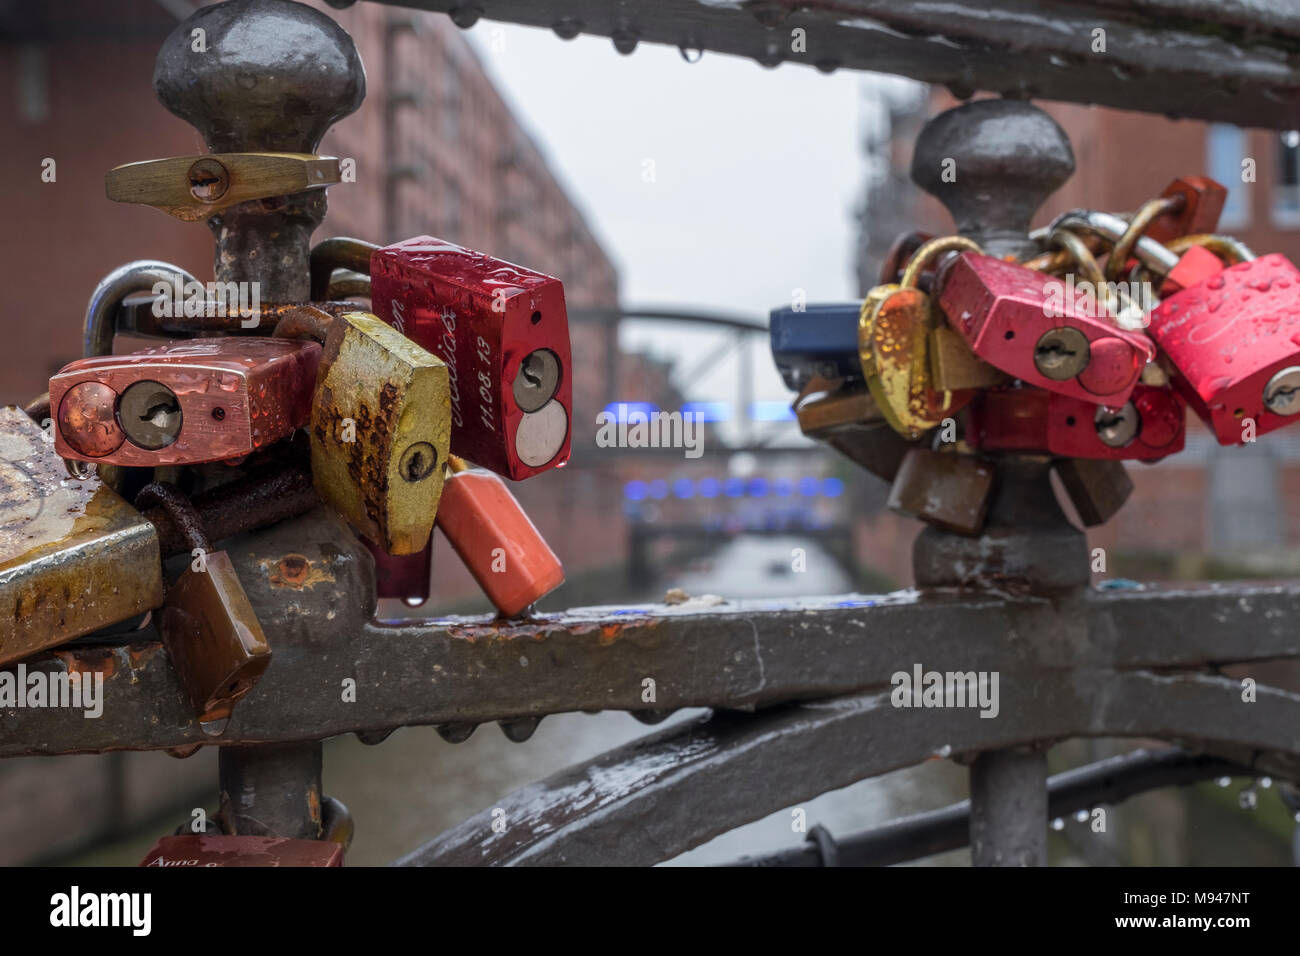 Love locks on a bridge at Hafen City, Hamburg, Germany - Stock Image